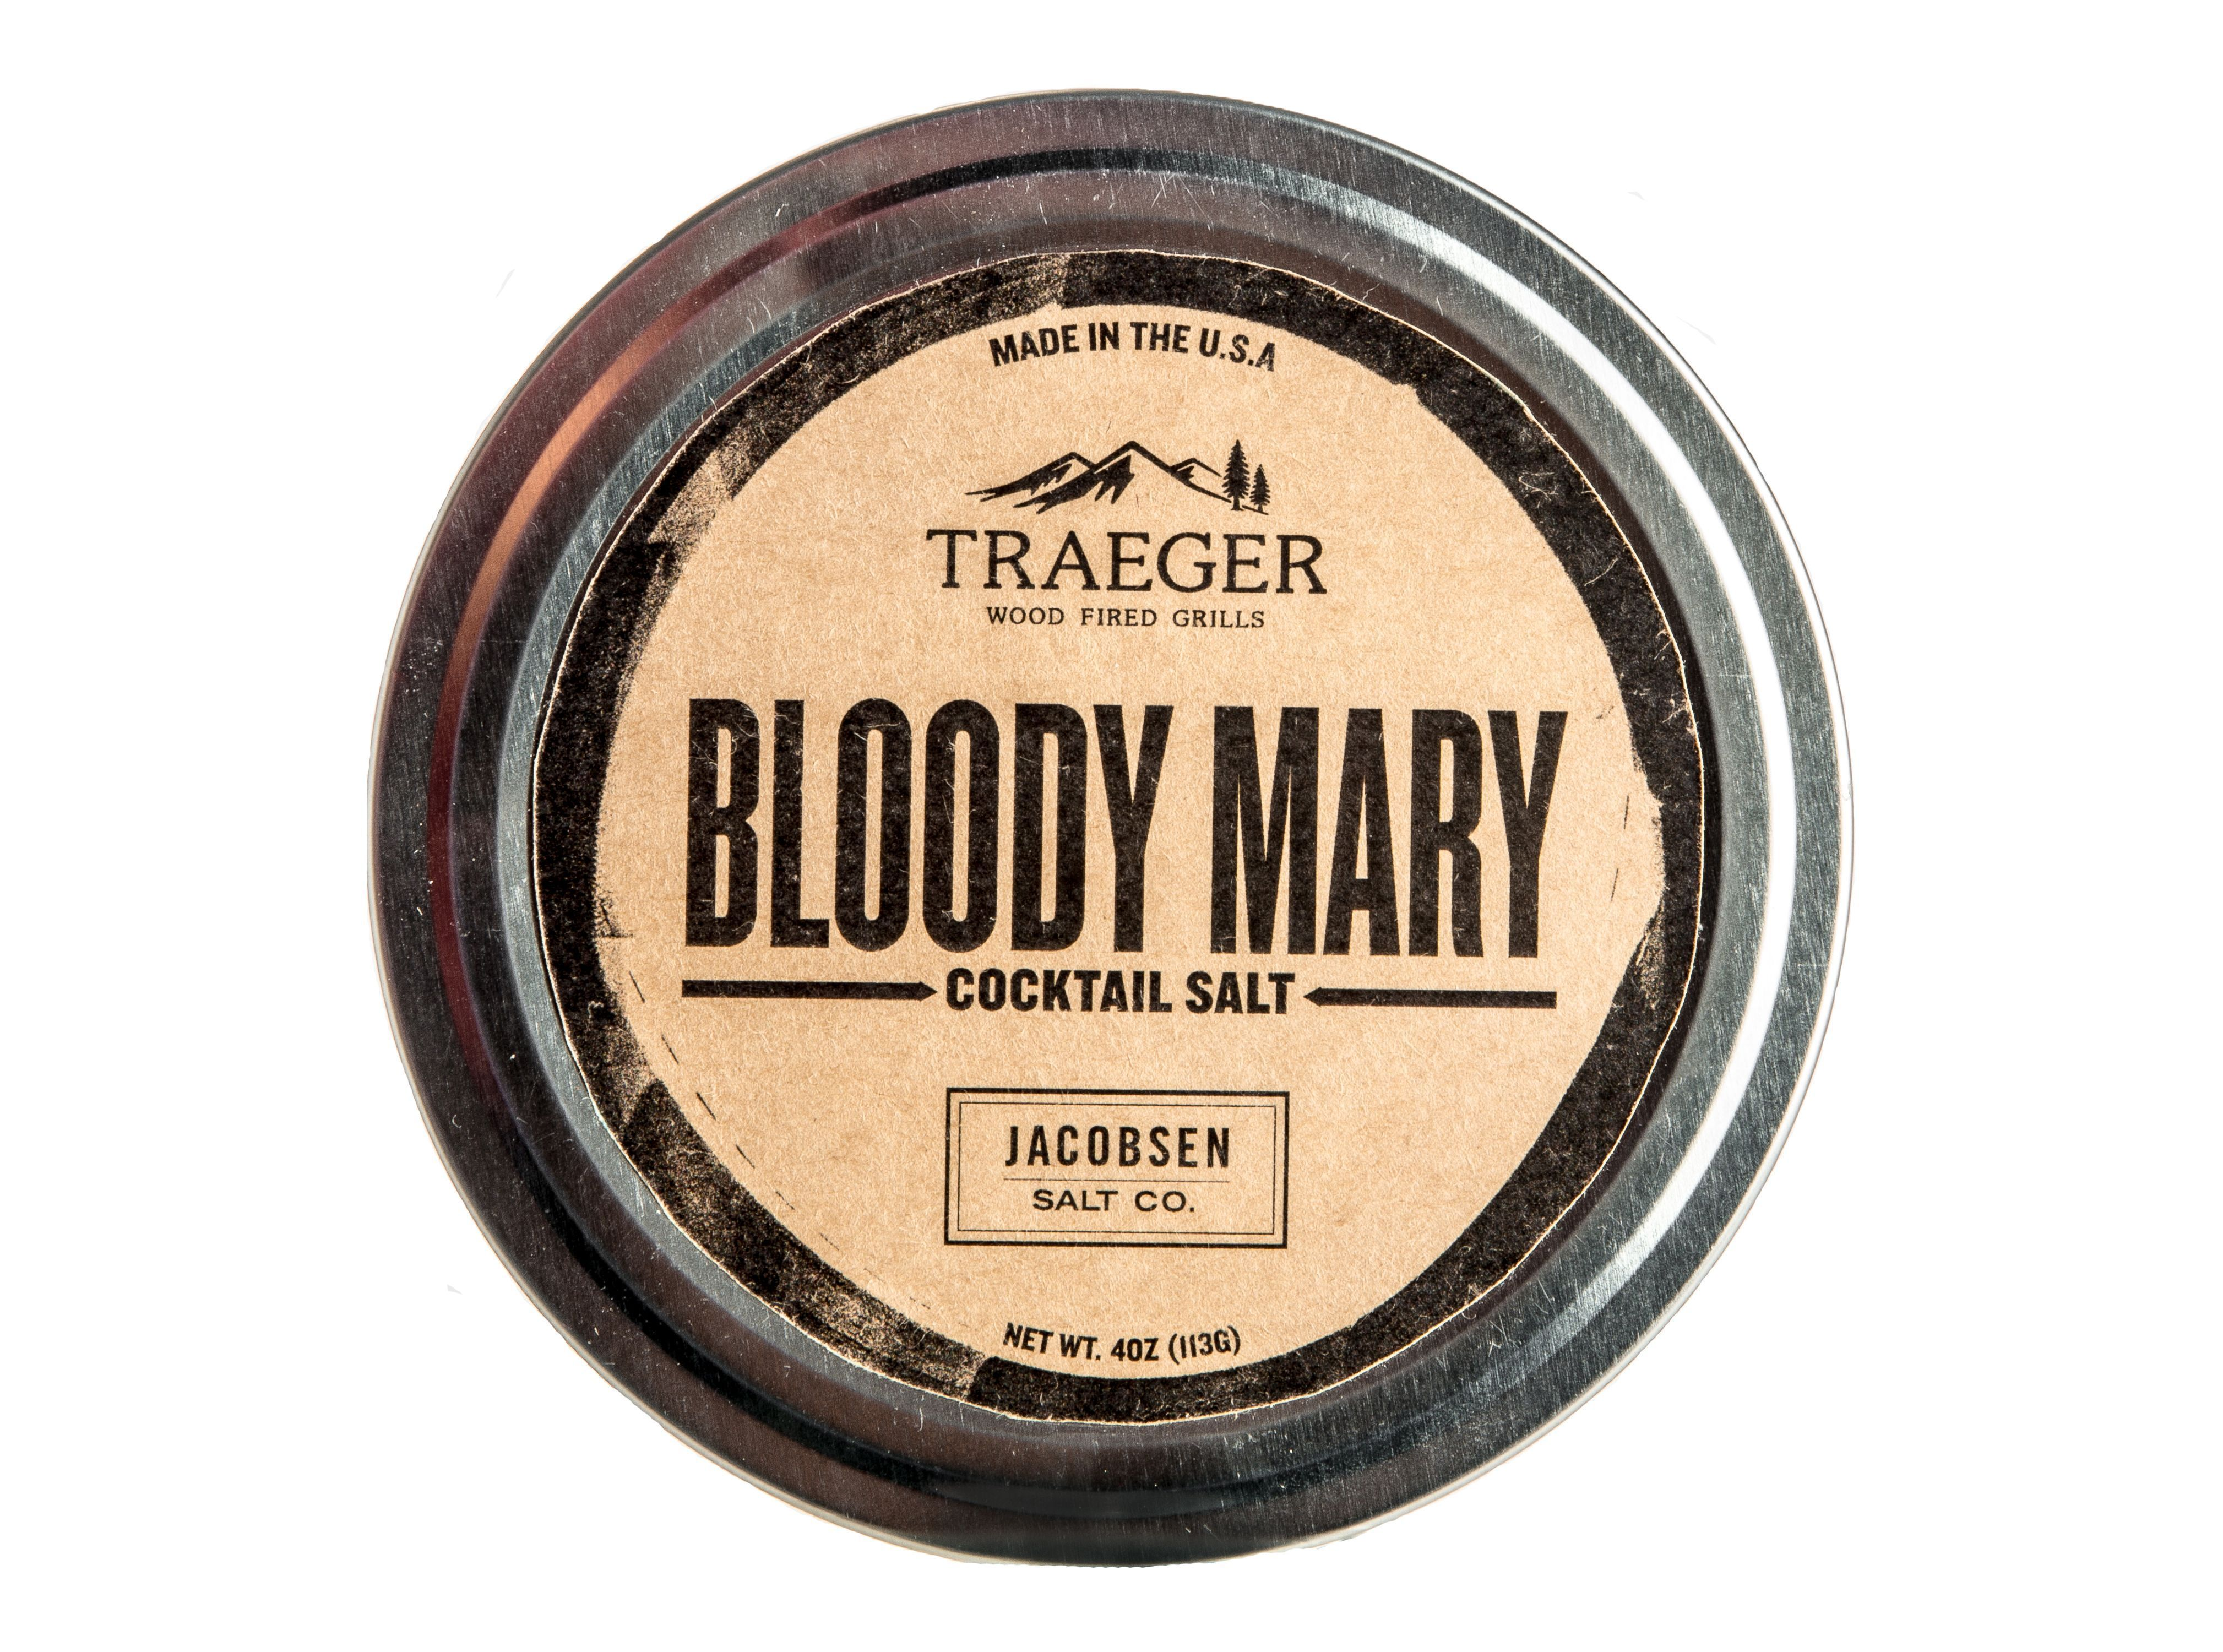 Traeger | Cocktail Bloody Mary Cocktail Salt